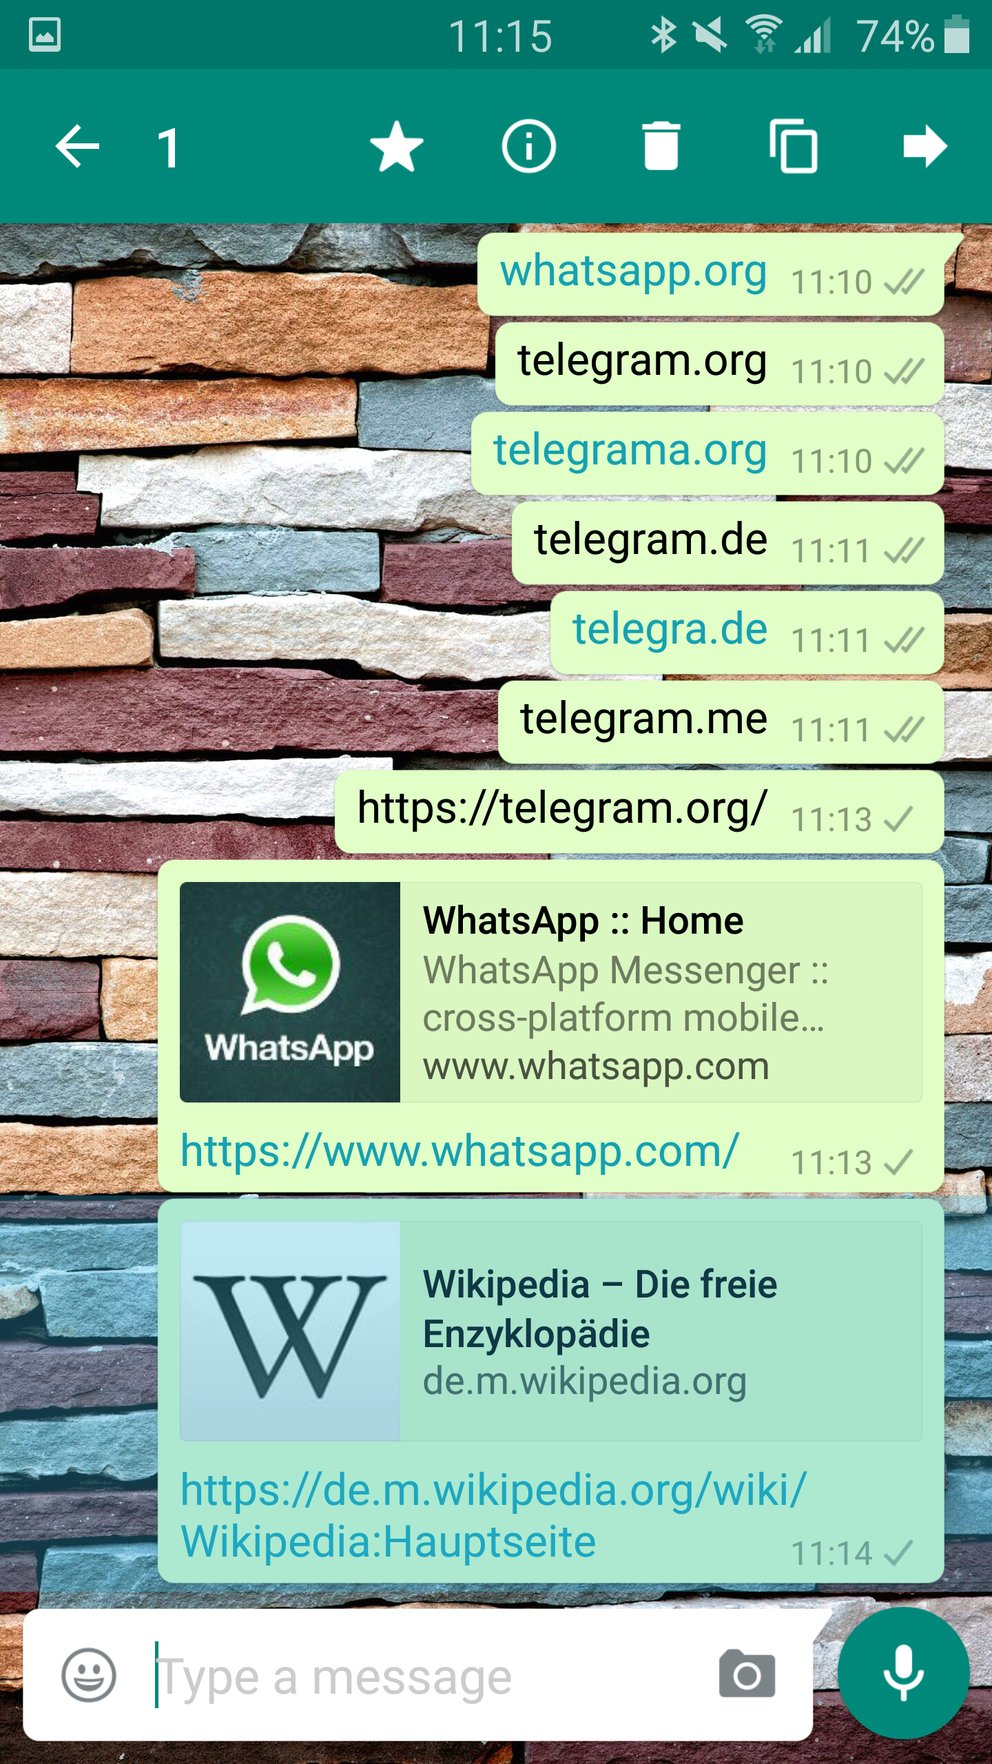 whatsapp-telegram-zensur-screenshot-3